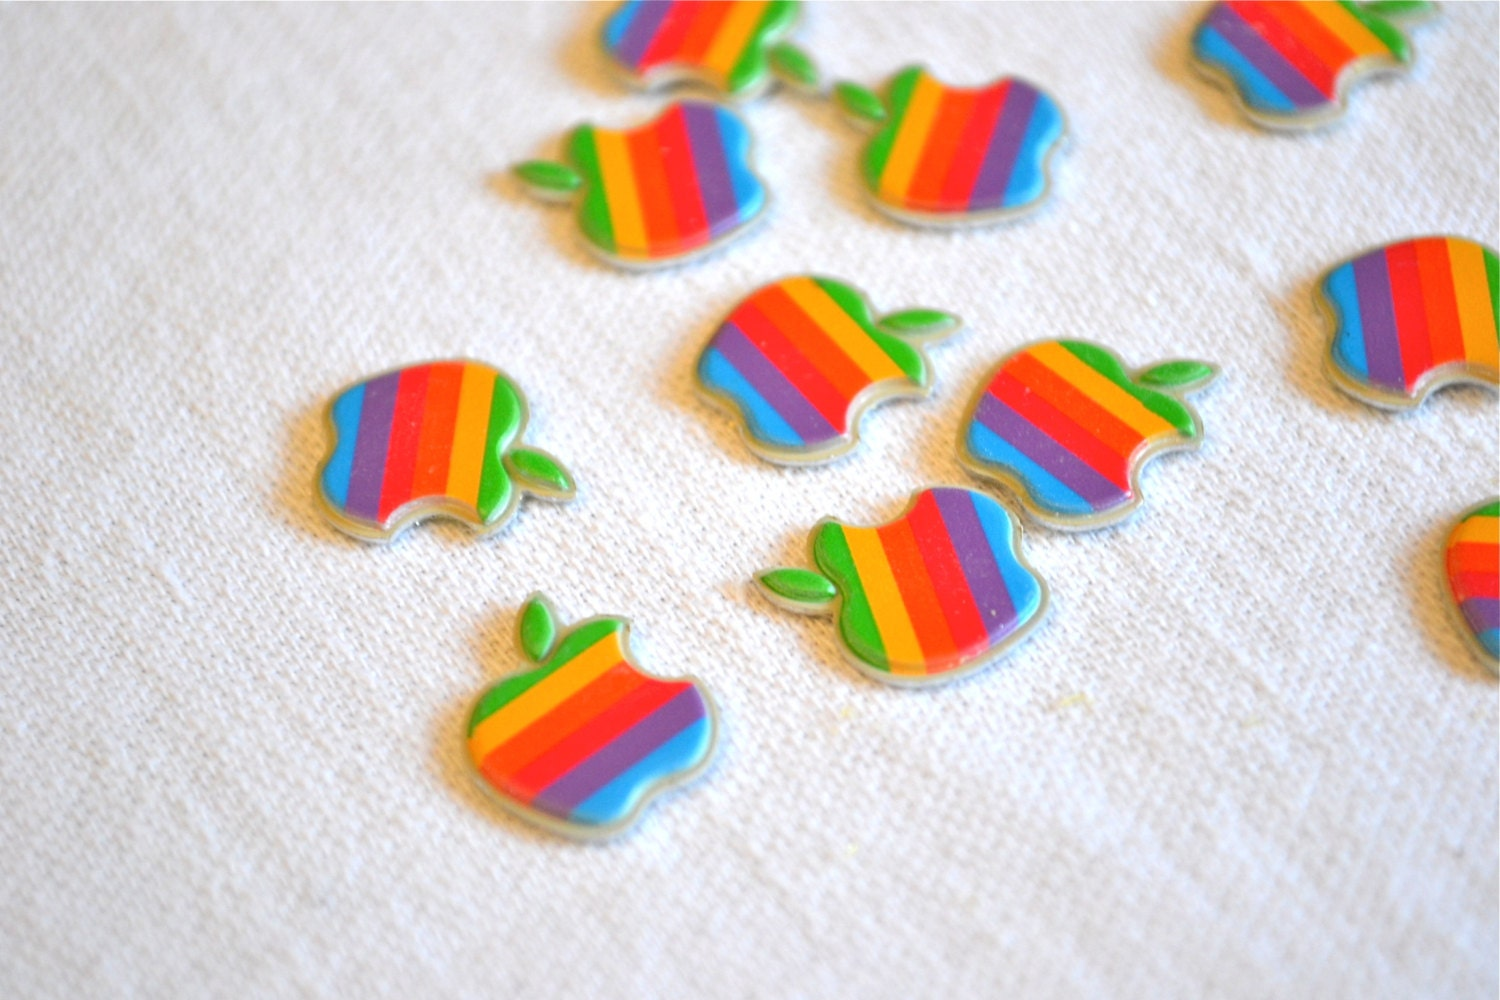 Vintage Apple Computer Miniature Plastic Emblem Logos - Rainbow Apple Lot of 10 - pumpkintruck